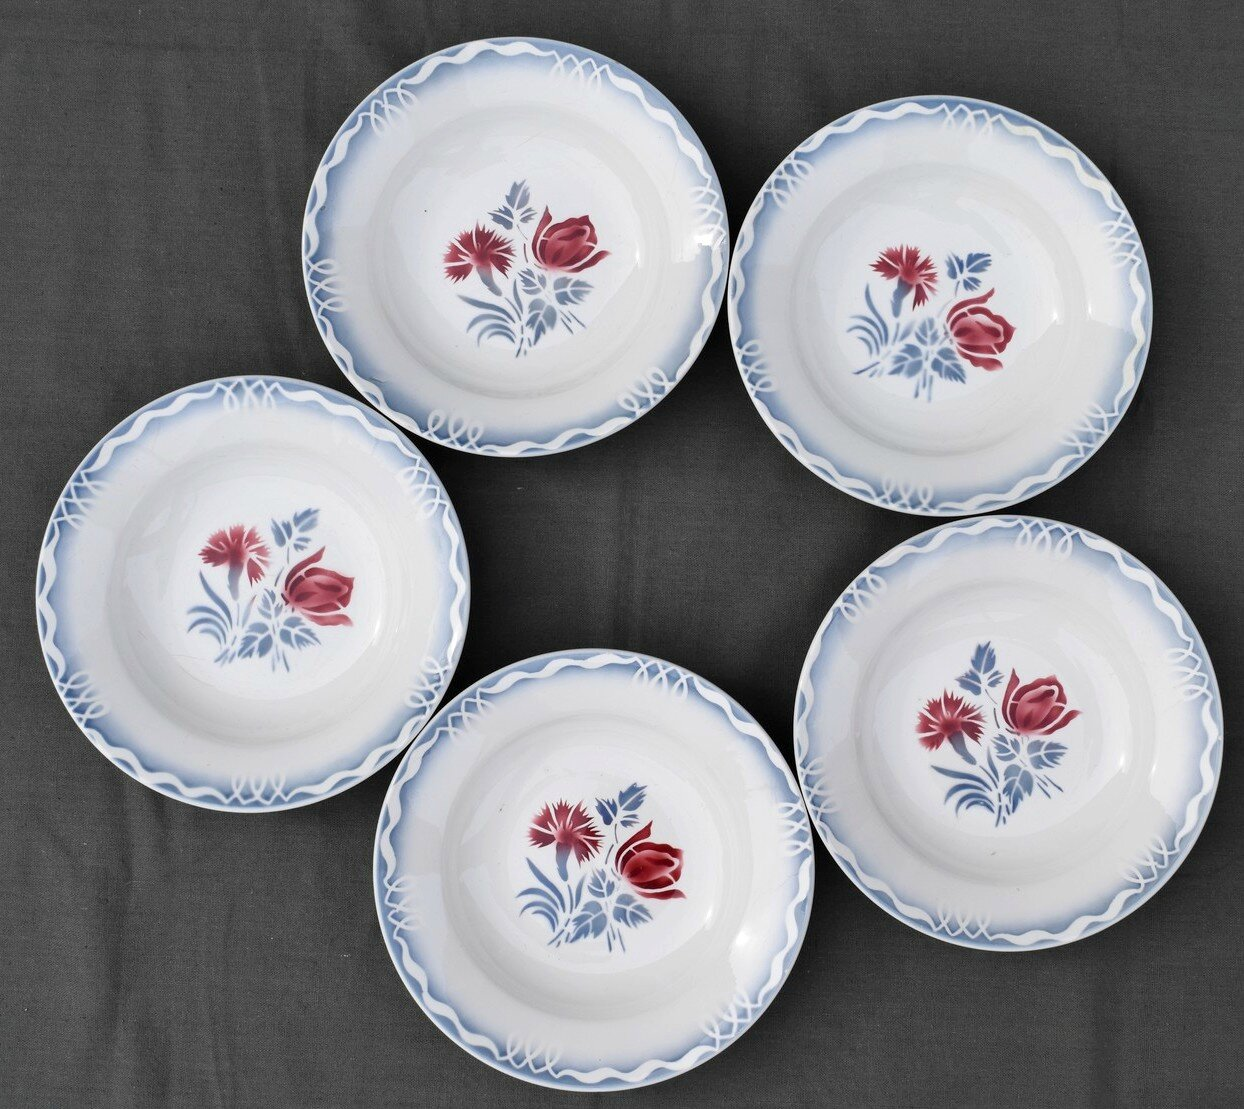 5 ASSIETTES CREUSES DIGOIN ET SARREGUEMINES DECOR JULIETTE